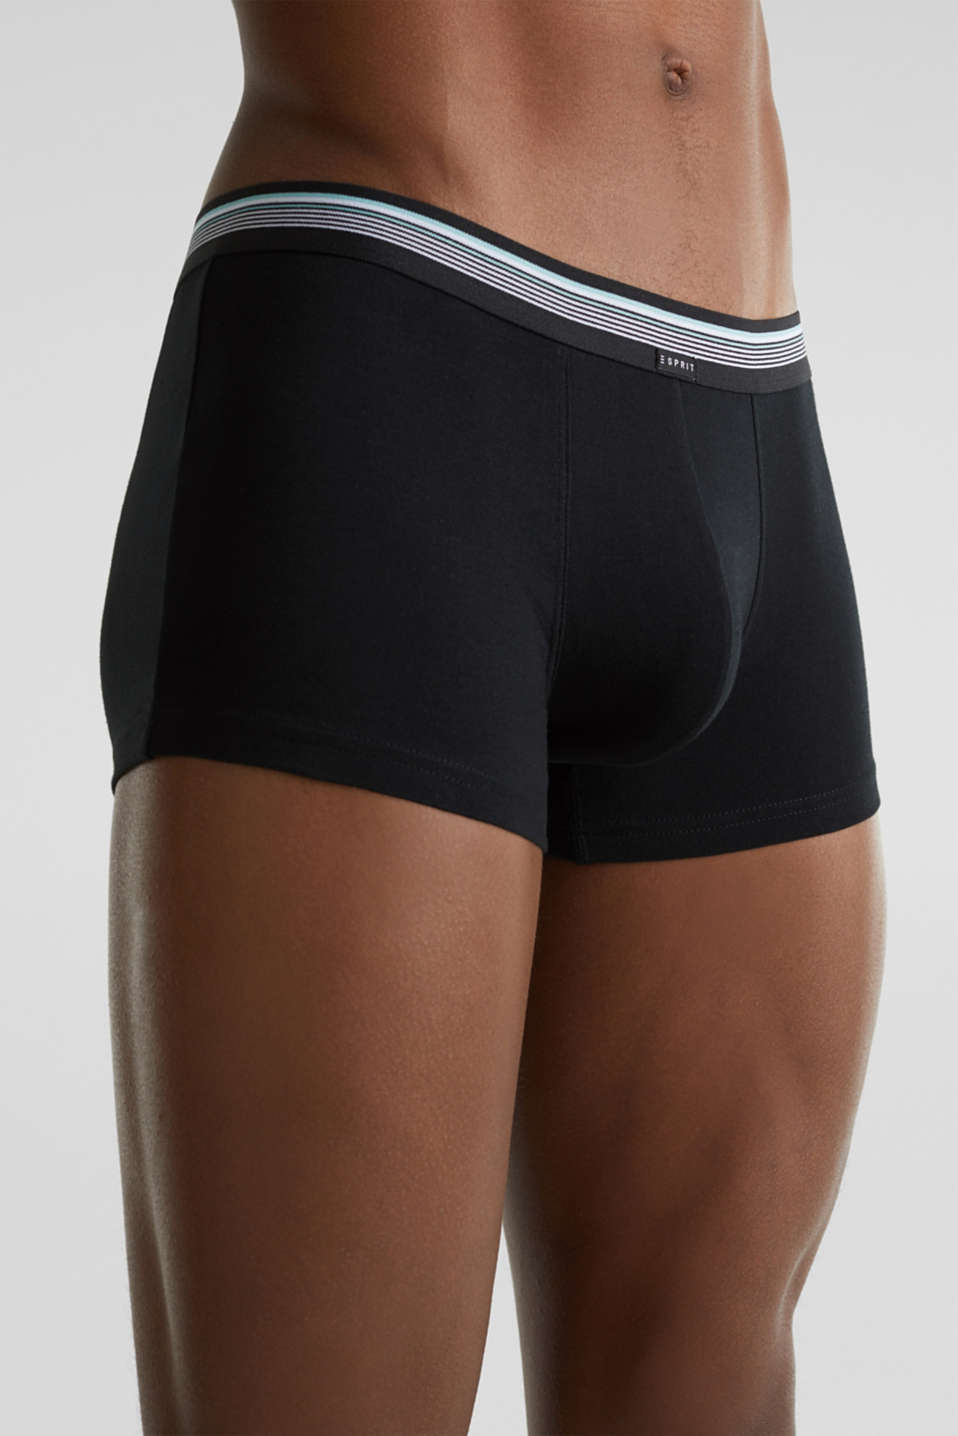 Triple pack: hipster shorts with a striped waistband, BLACK, detail image number 2